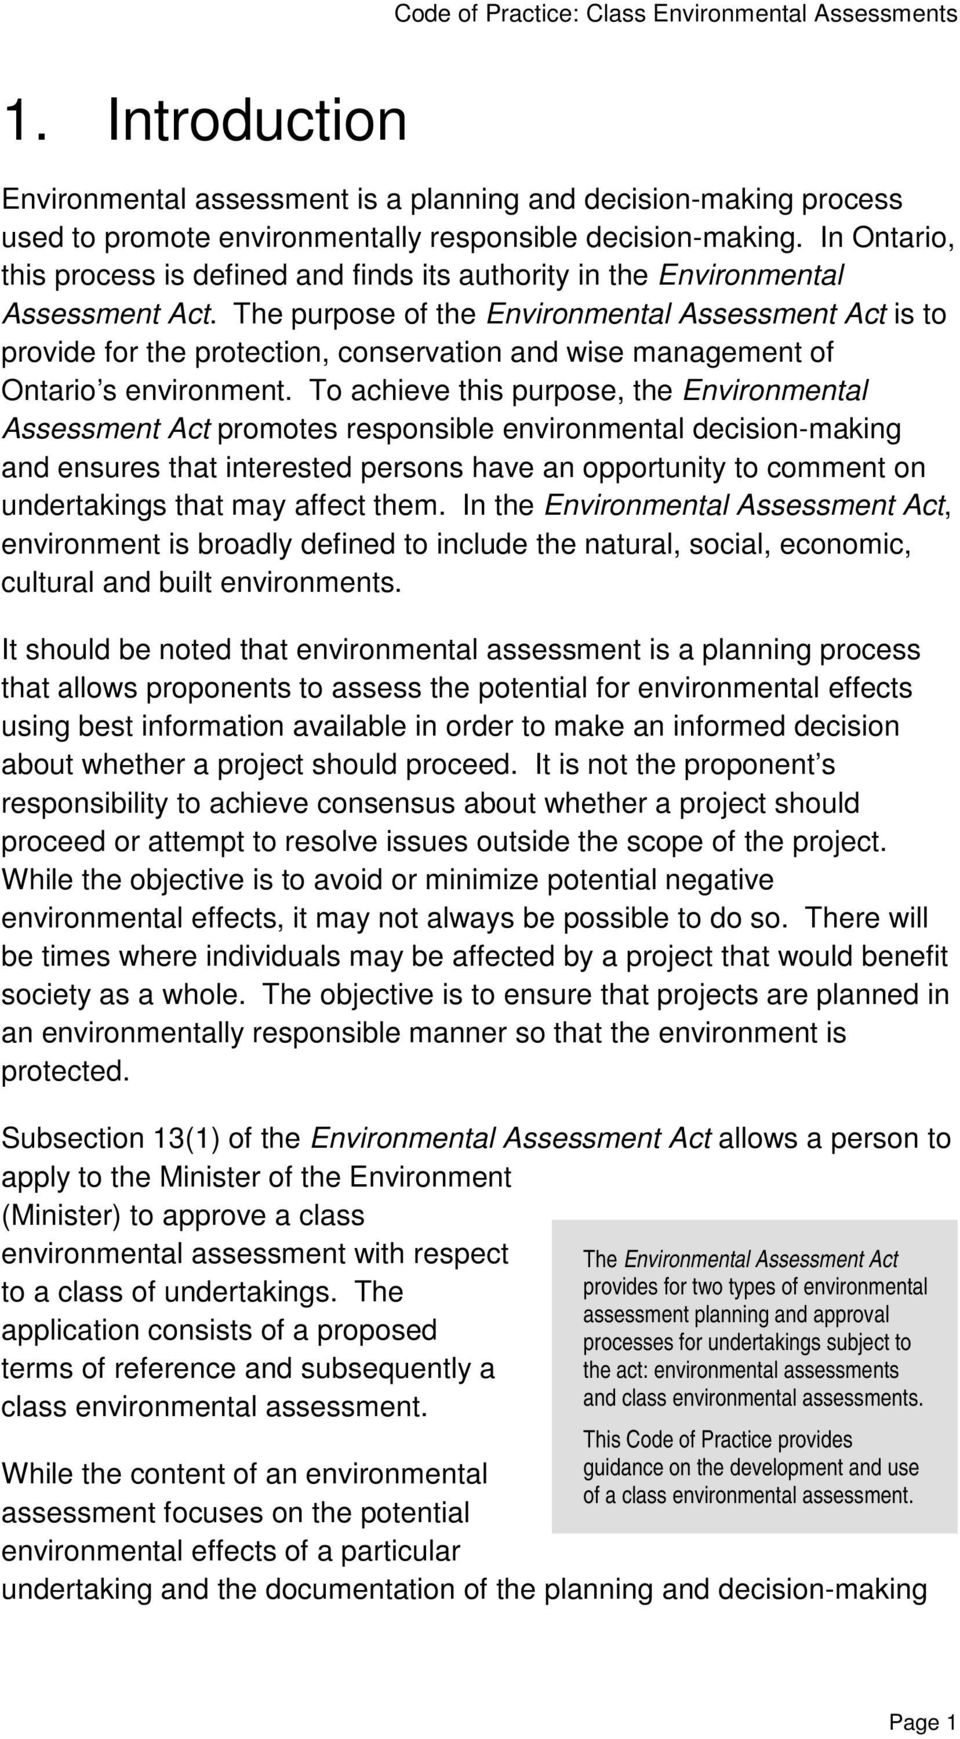 The purpose of the Environmental Assessment Act is to provide for the protection, conservation and wise management of Ontario s environment.